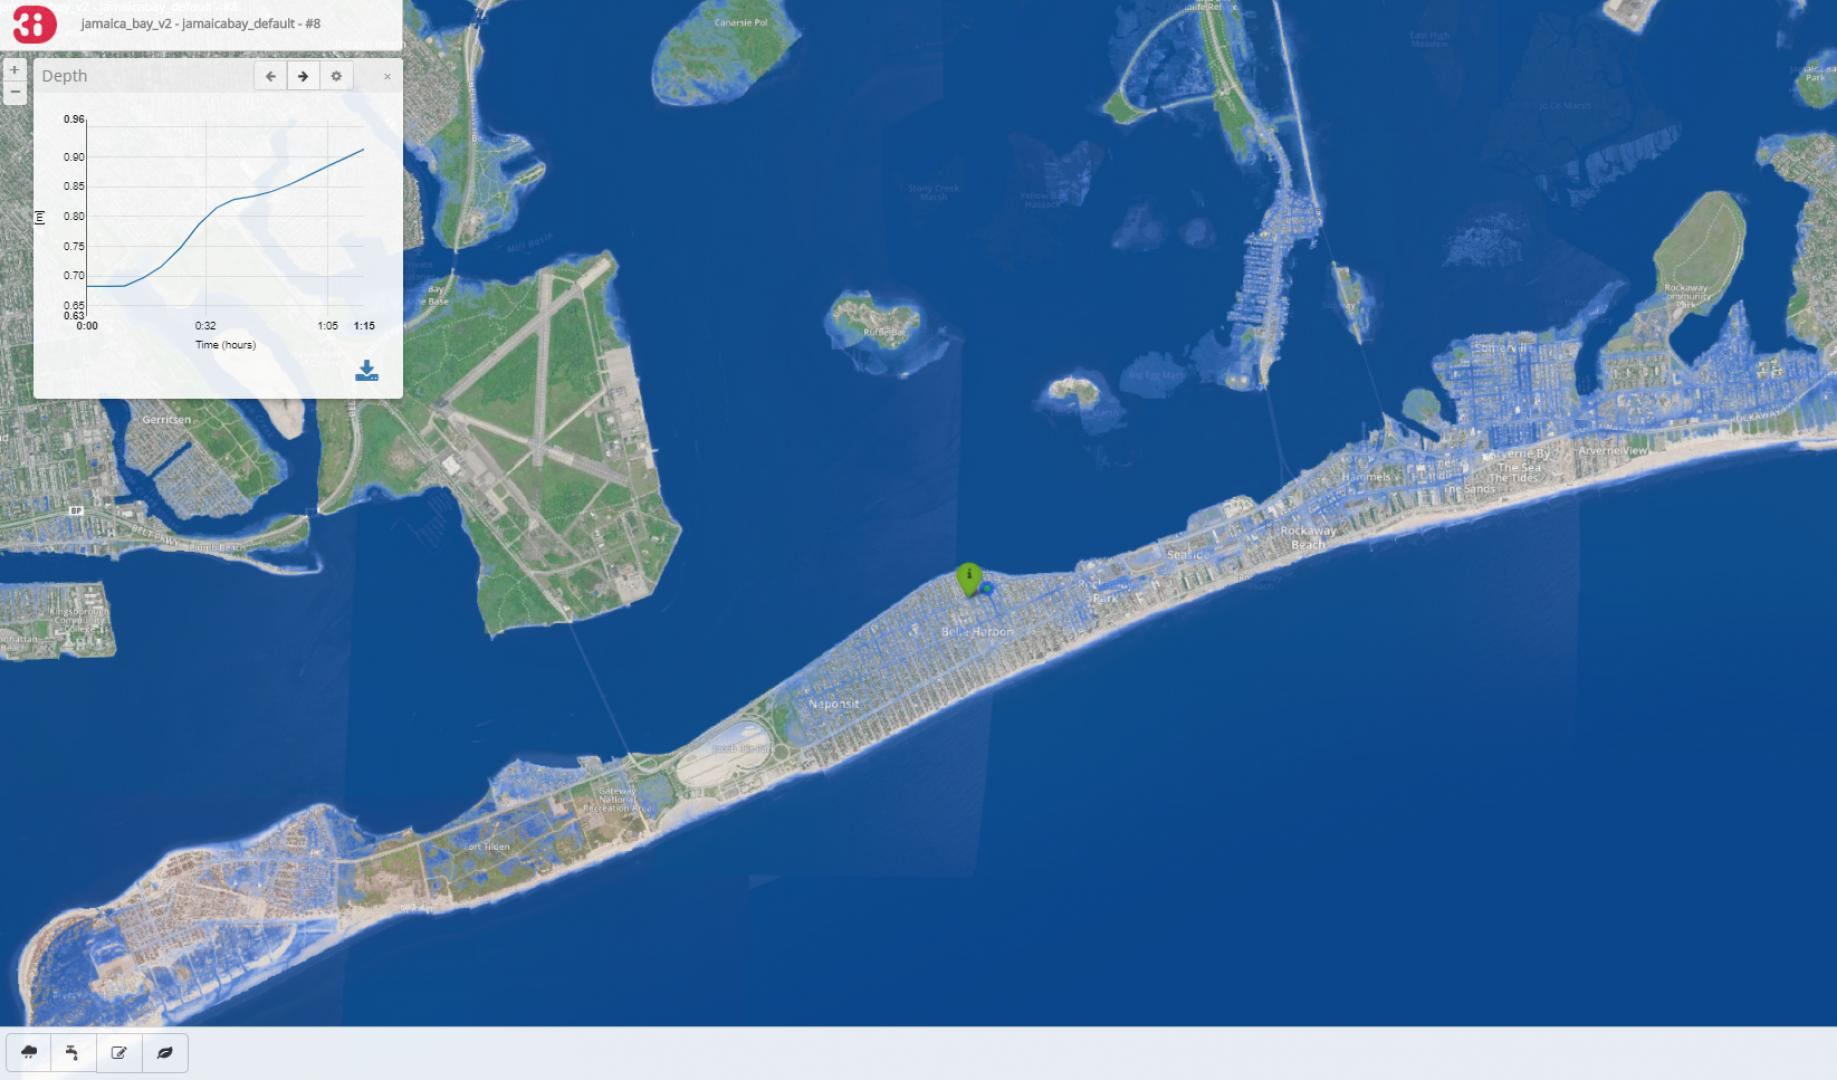 Flood model of Jamaica Bay, New York